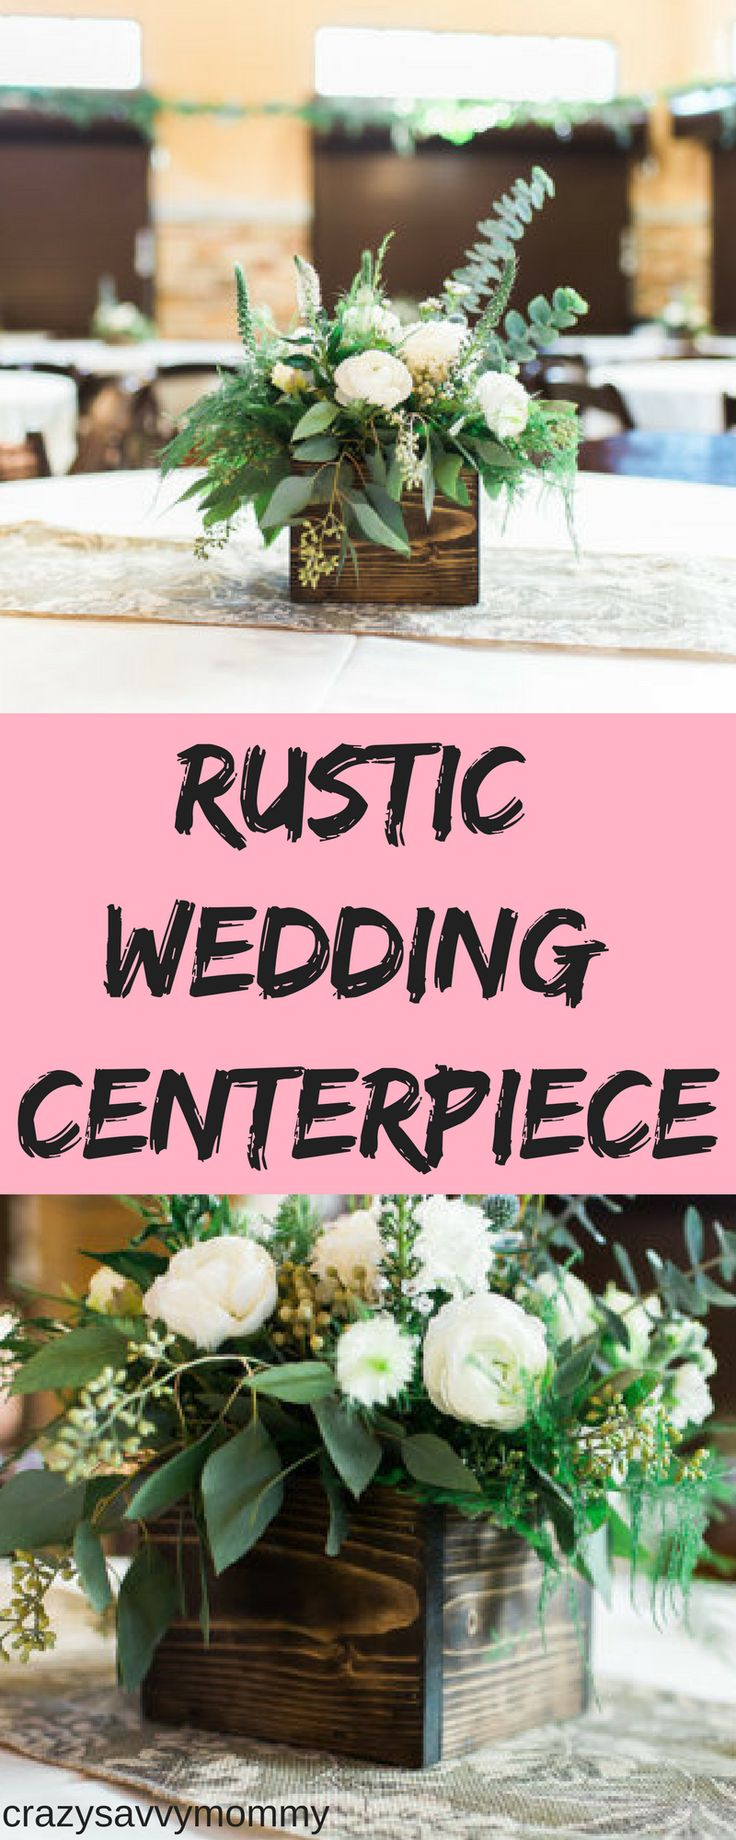 RUSTIC WEDDING Centerpiece. Reclaimed wood planter box centerpiece. This would look great for your wedding centerpieces! Just add flowers, pine cones, or any other decorations. This would also look great on a table or book shelf. Click the link to get it